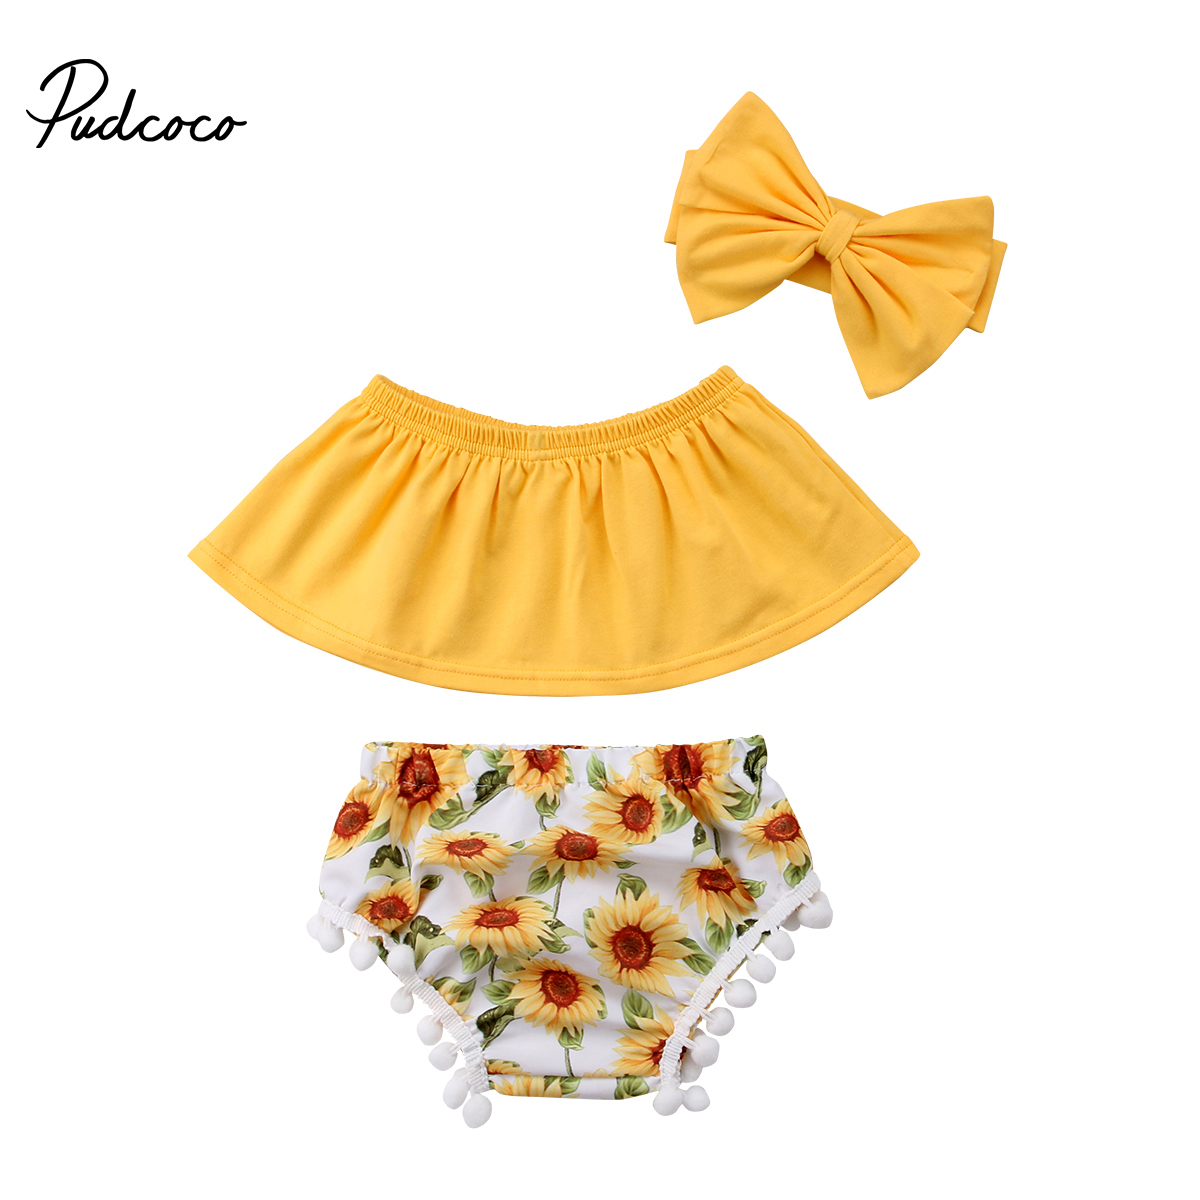 2018 Brand New Toddler Infant Newborn Baby Girls Off Shoulder Tops+Floral Shorts+Headband 3PCS Outfits Set Sunflower Clothes